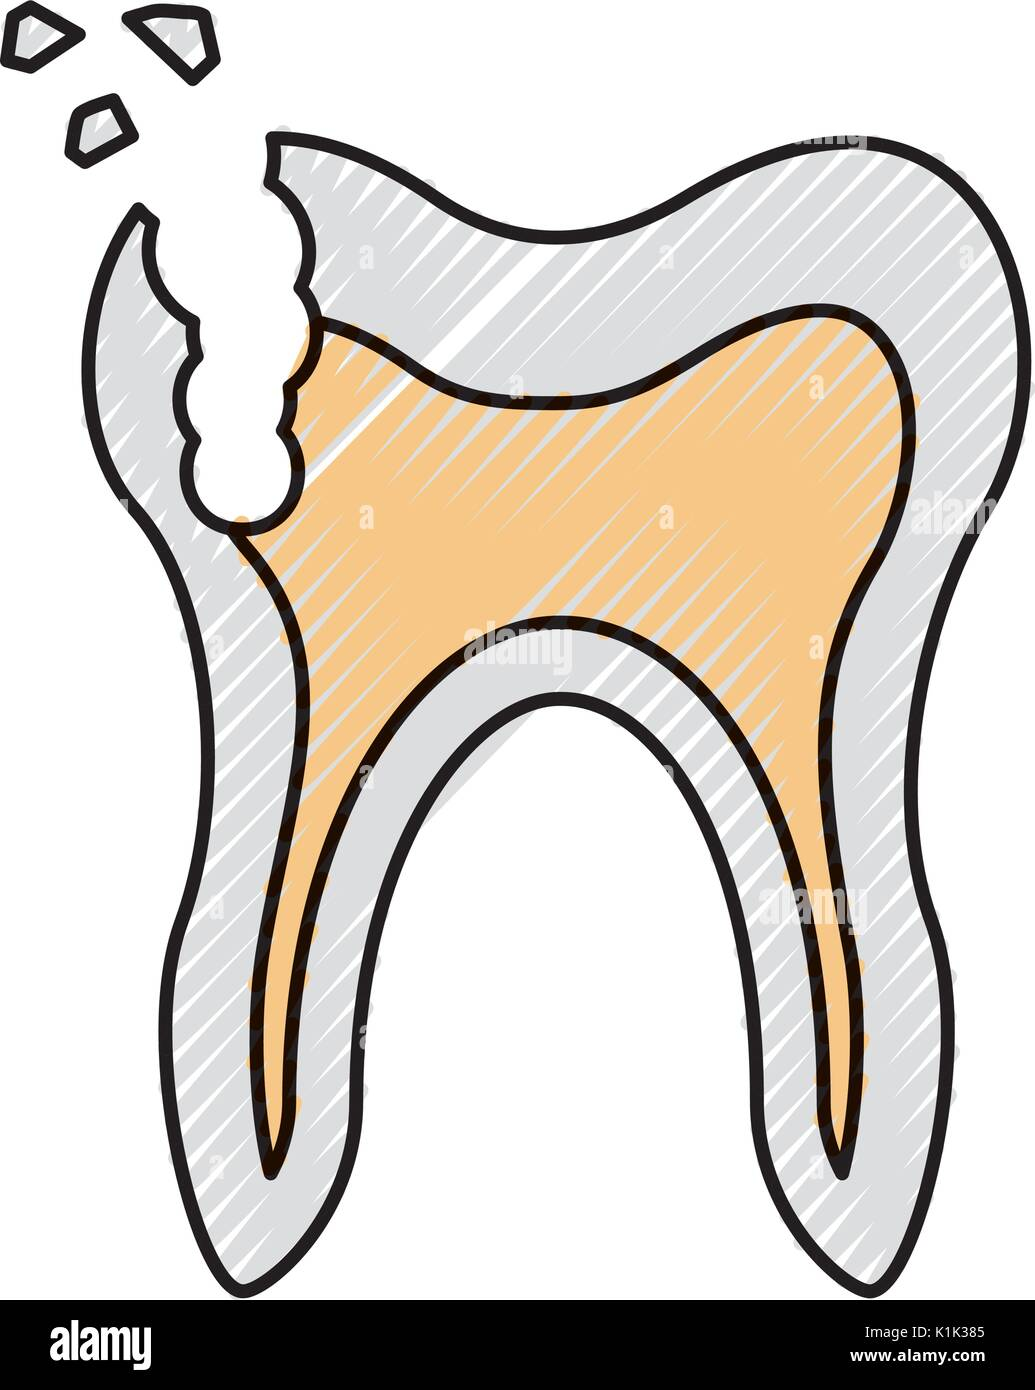 Human tooth with decay - Stock Image